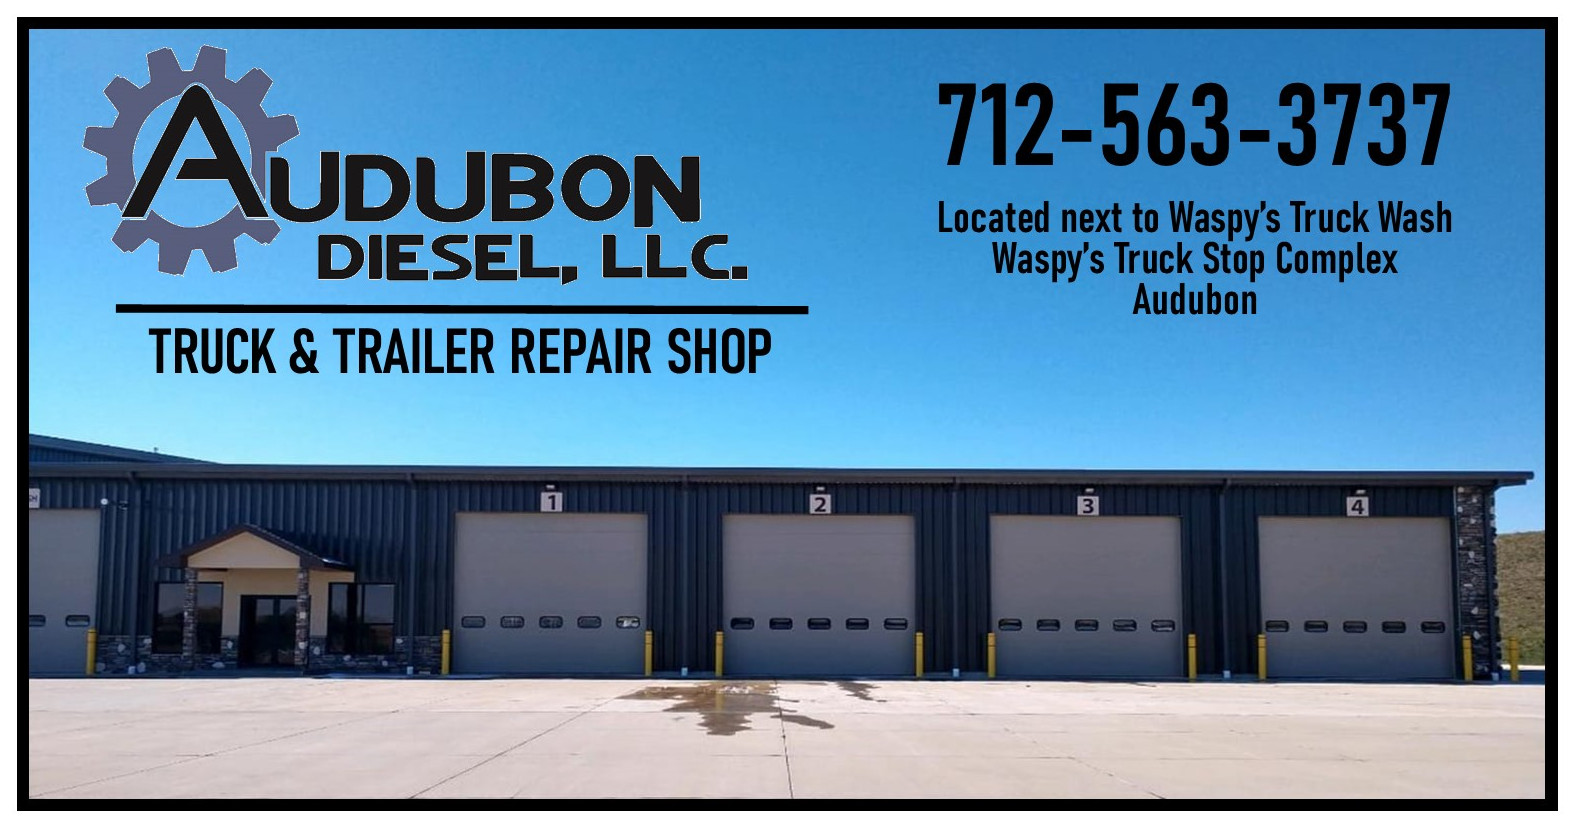 Audubon Diesel truck and trailer repair shop